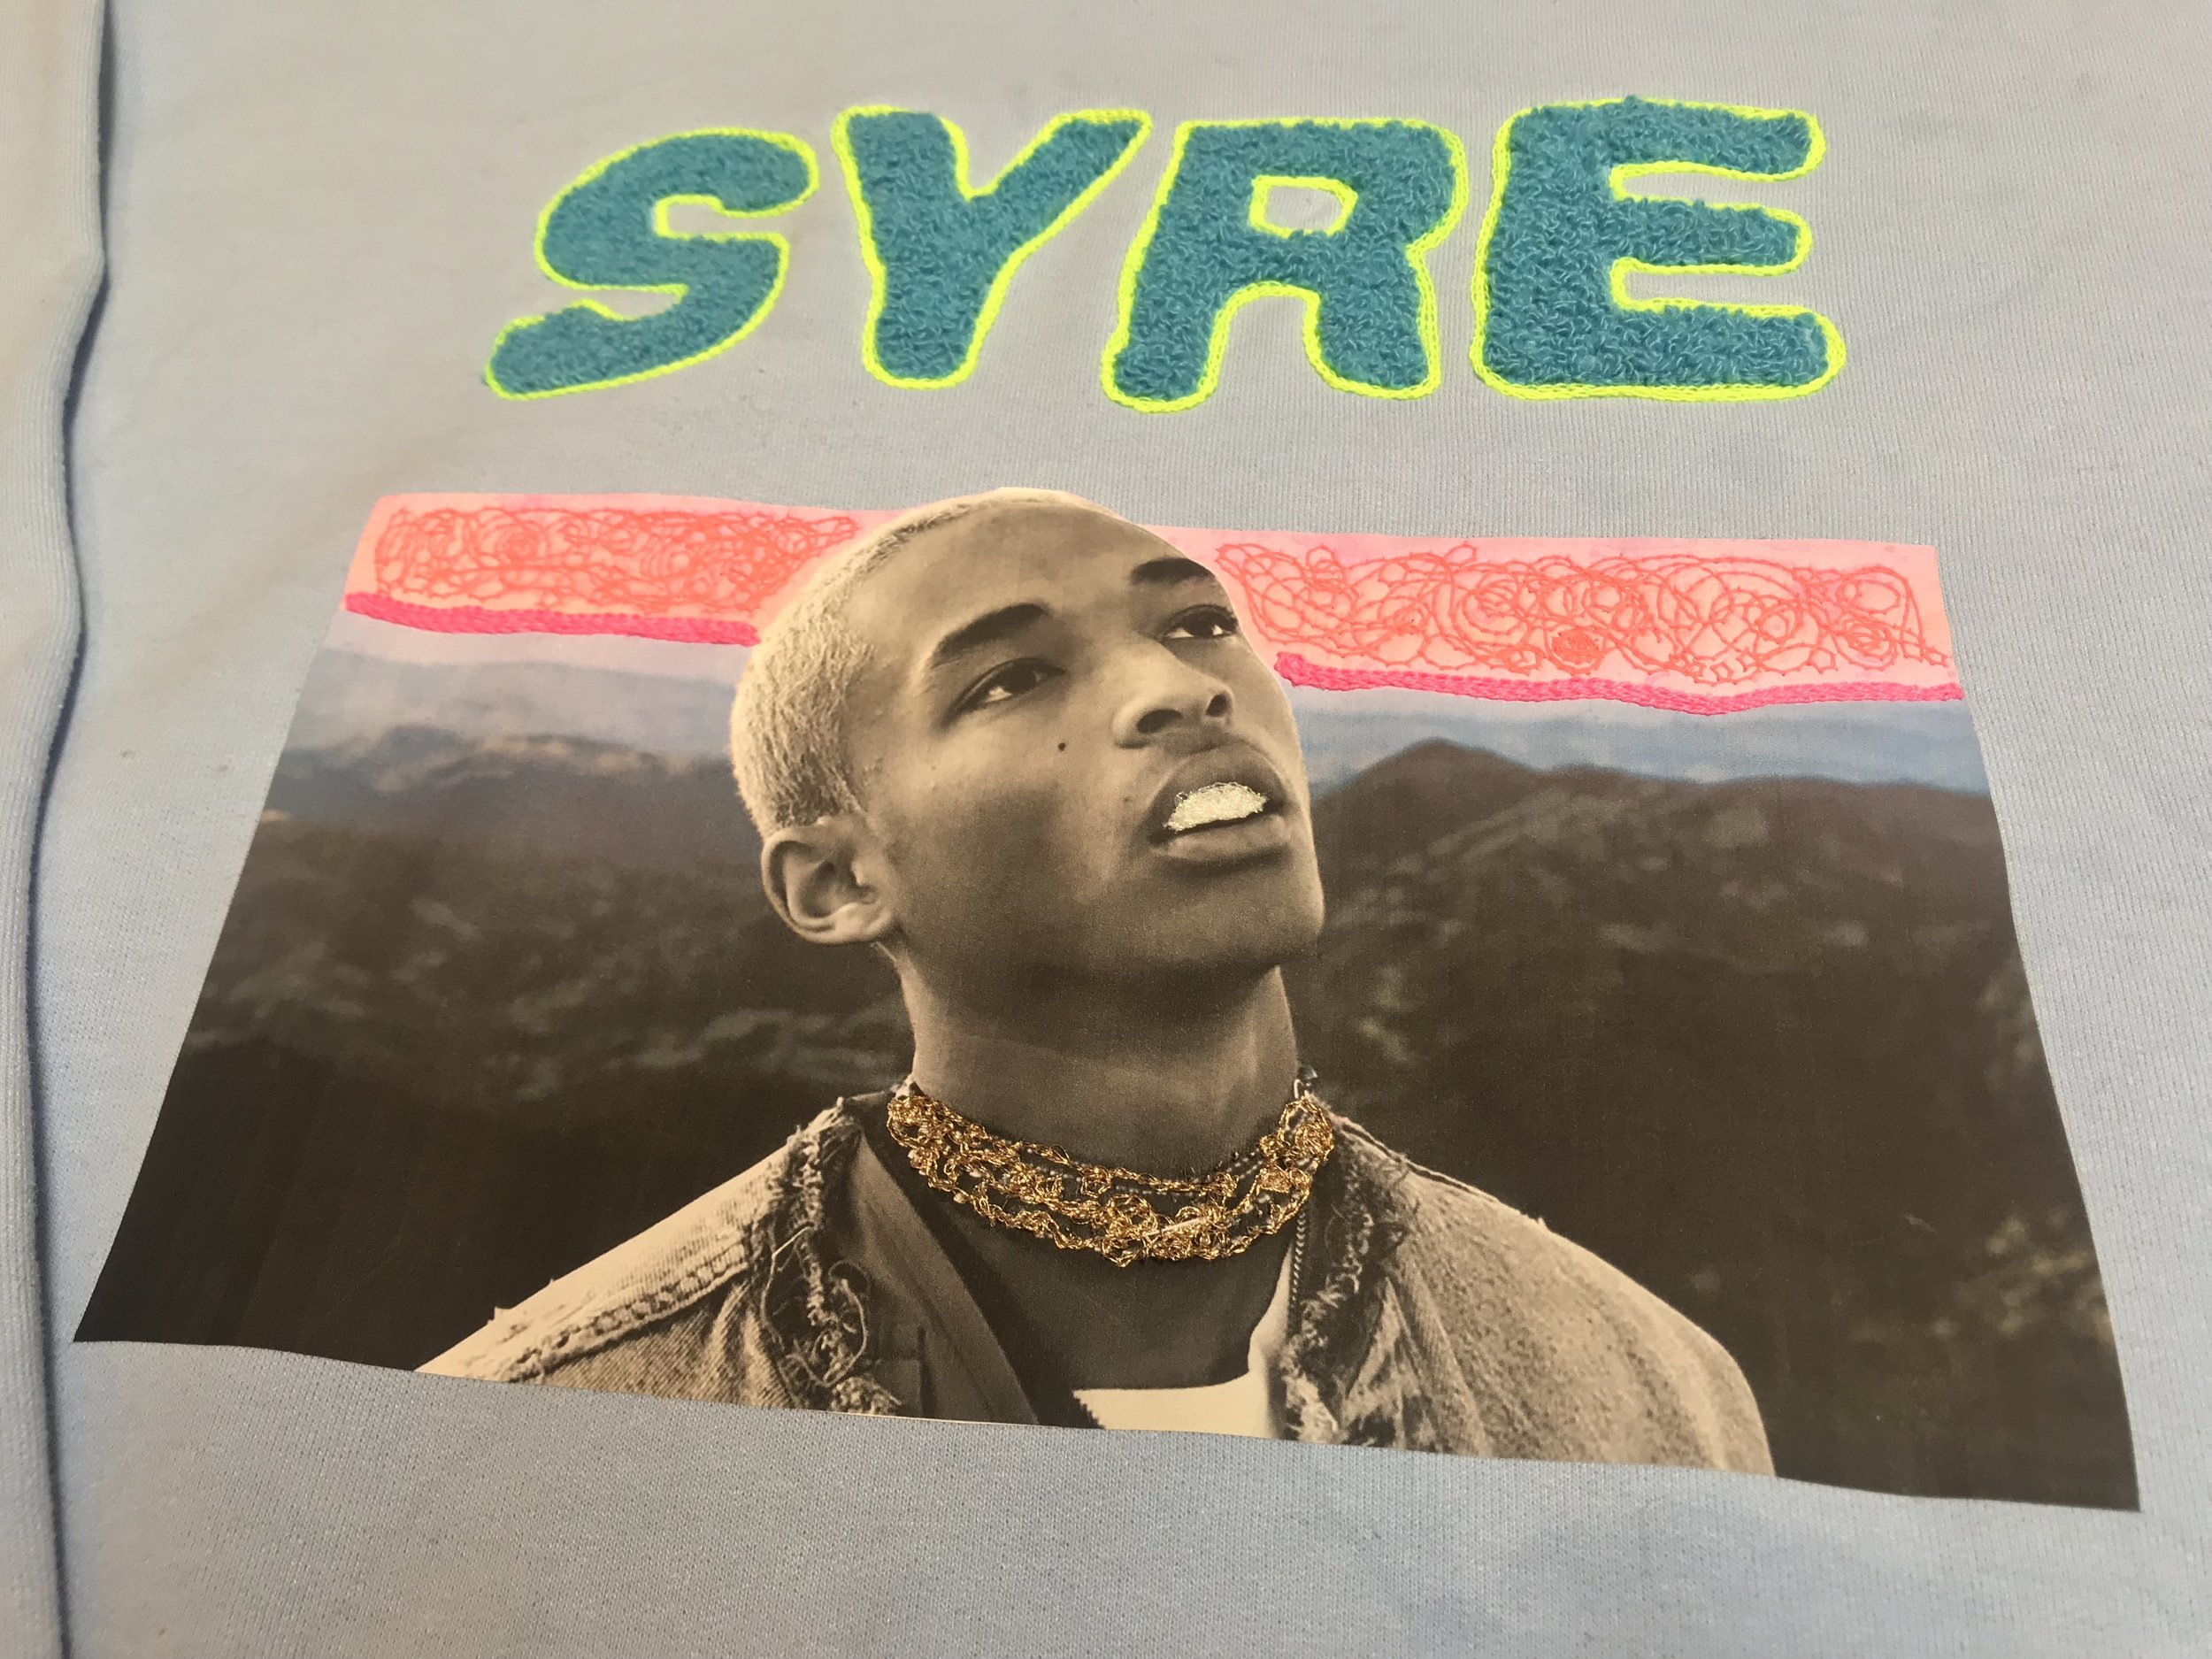 Syre and Image close up 3.JPG